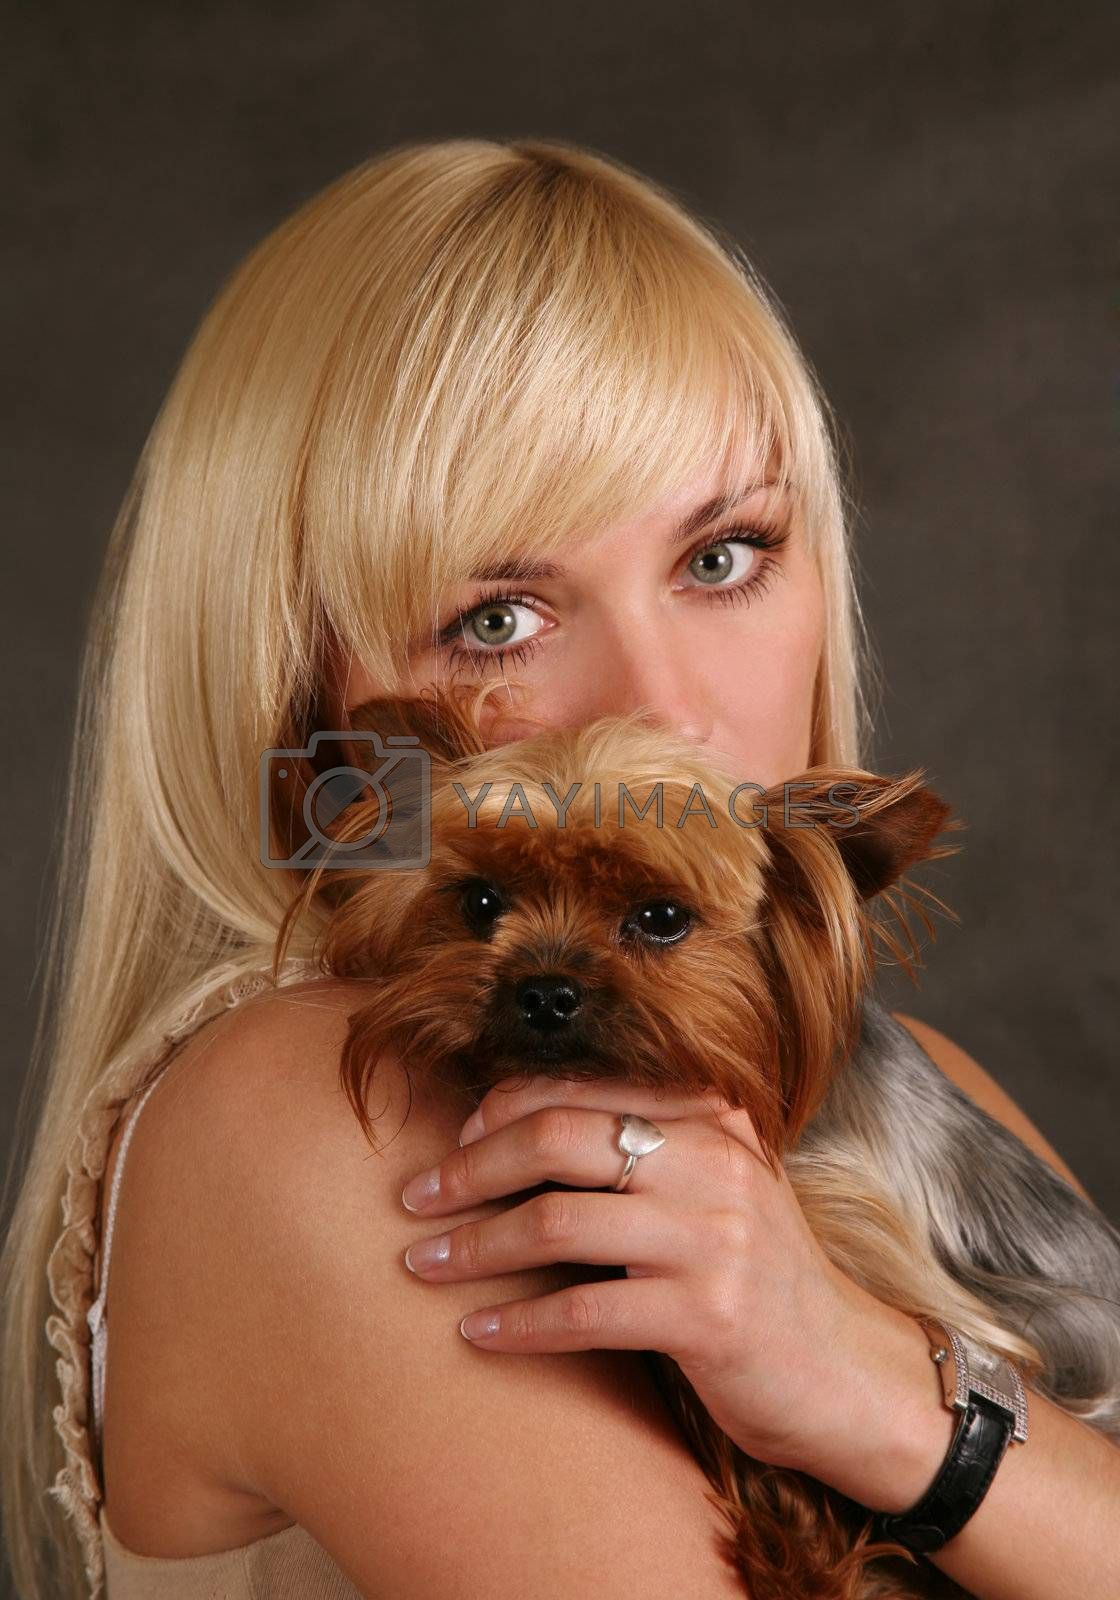 The girl holds the puppy of the yorkshire terrier